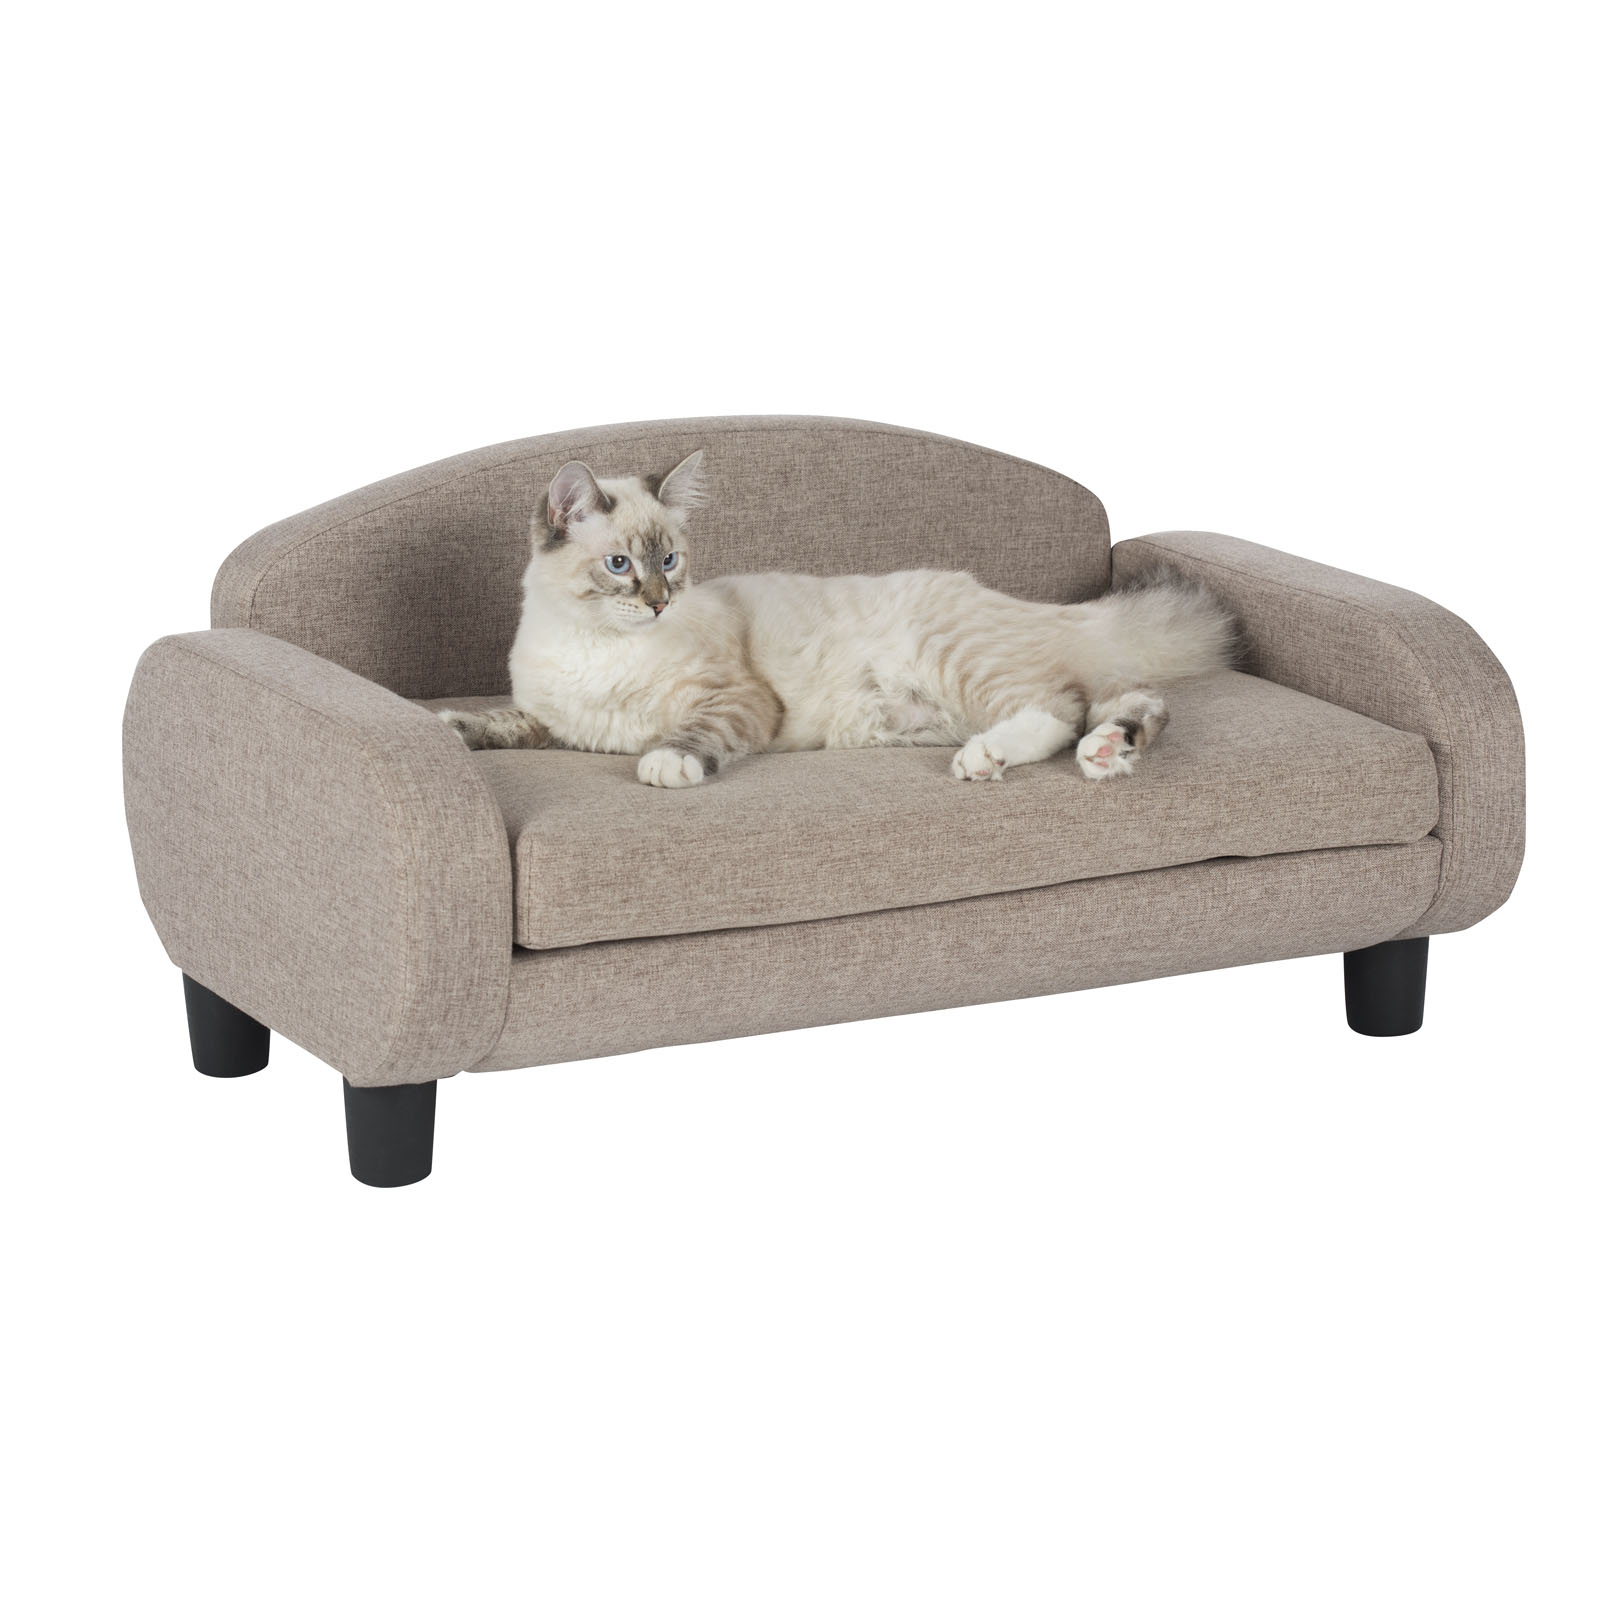 Pet Sofa Bed Pet Sofa Bed For Small Dogs Or Cats In